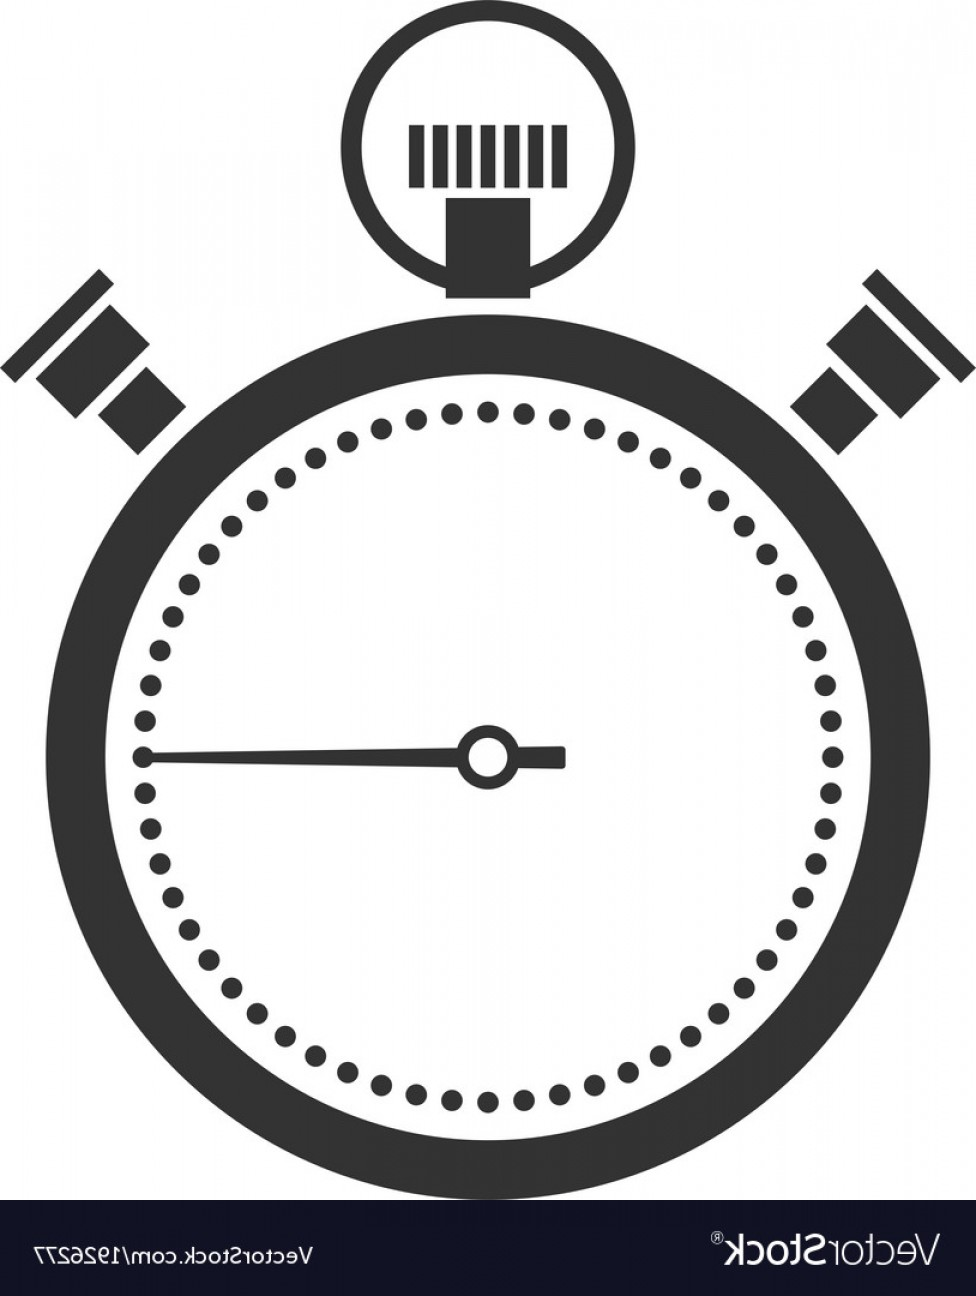 Stop Watch Vector Ai File: Stopwatch Or Chronometer Icon Vector